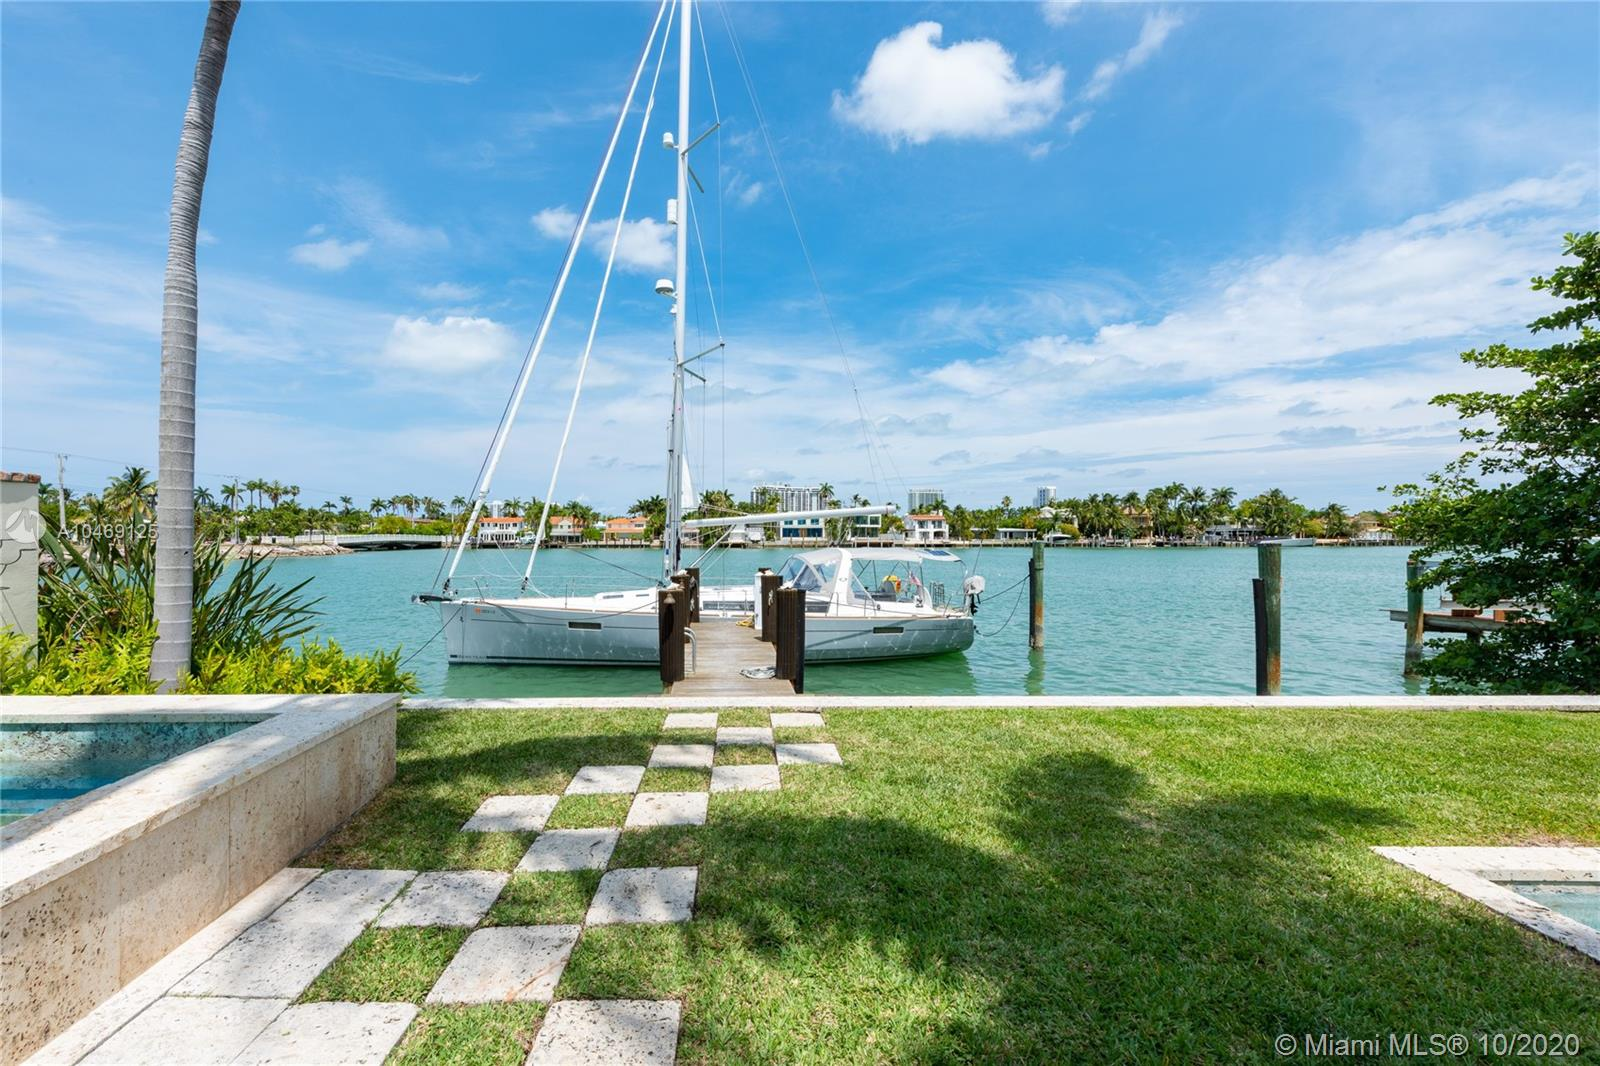 Beautiful Mediterranean-style waterfront on the Venetian Islands in Miami Beach. Detailed with arched doorways, high ceilings, wood-burning fireplace, and large windows among many other are the glass-enclosed living room with a built-in entertainment bar, the family room, and the formal dining. The first floor is completed with an office with a powder room, a staff room, and an eat-in kitchen with a breakfast bar. Four bedrooms upstairs, including a master suite with 2 walk-in closets and beautifully renovated mosaic tile bath. Step outside to find yourself surrounded with lush vegetation, the scent of blossoming flowers, and a sight of the water. The backyard features a large pool, a spa, full cabana bath, a gazebo with a summer kitchen, and an observation deck.